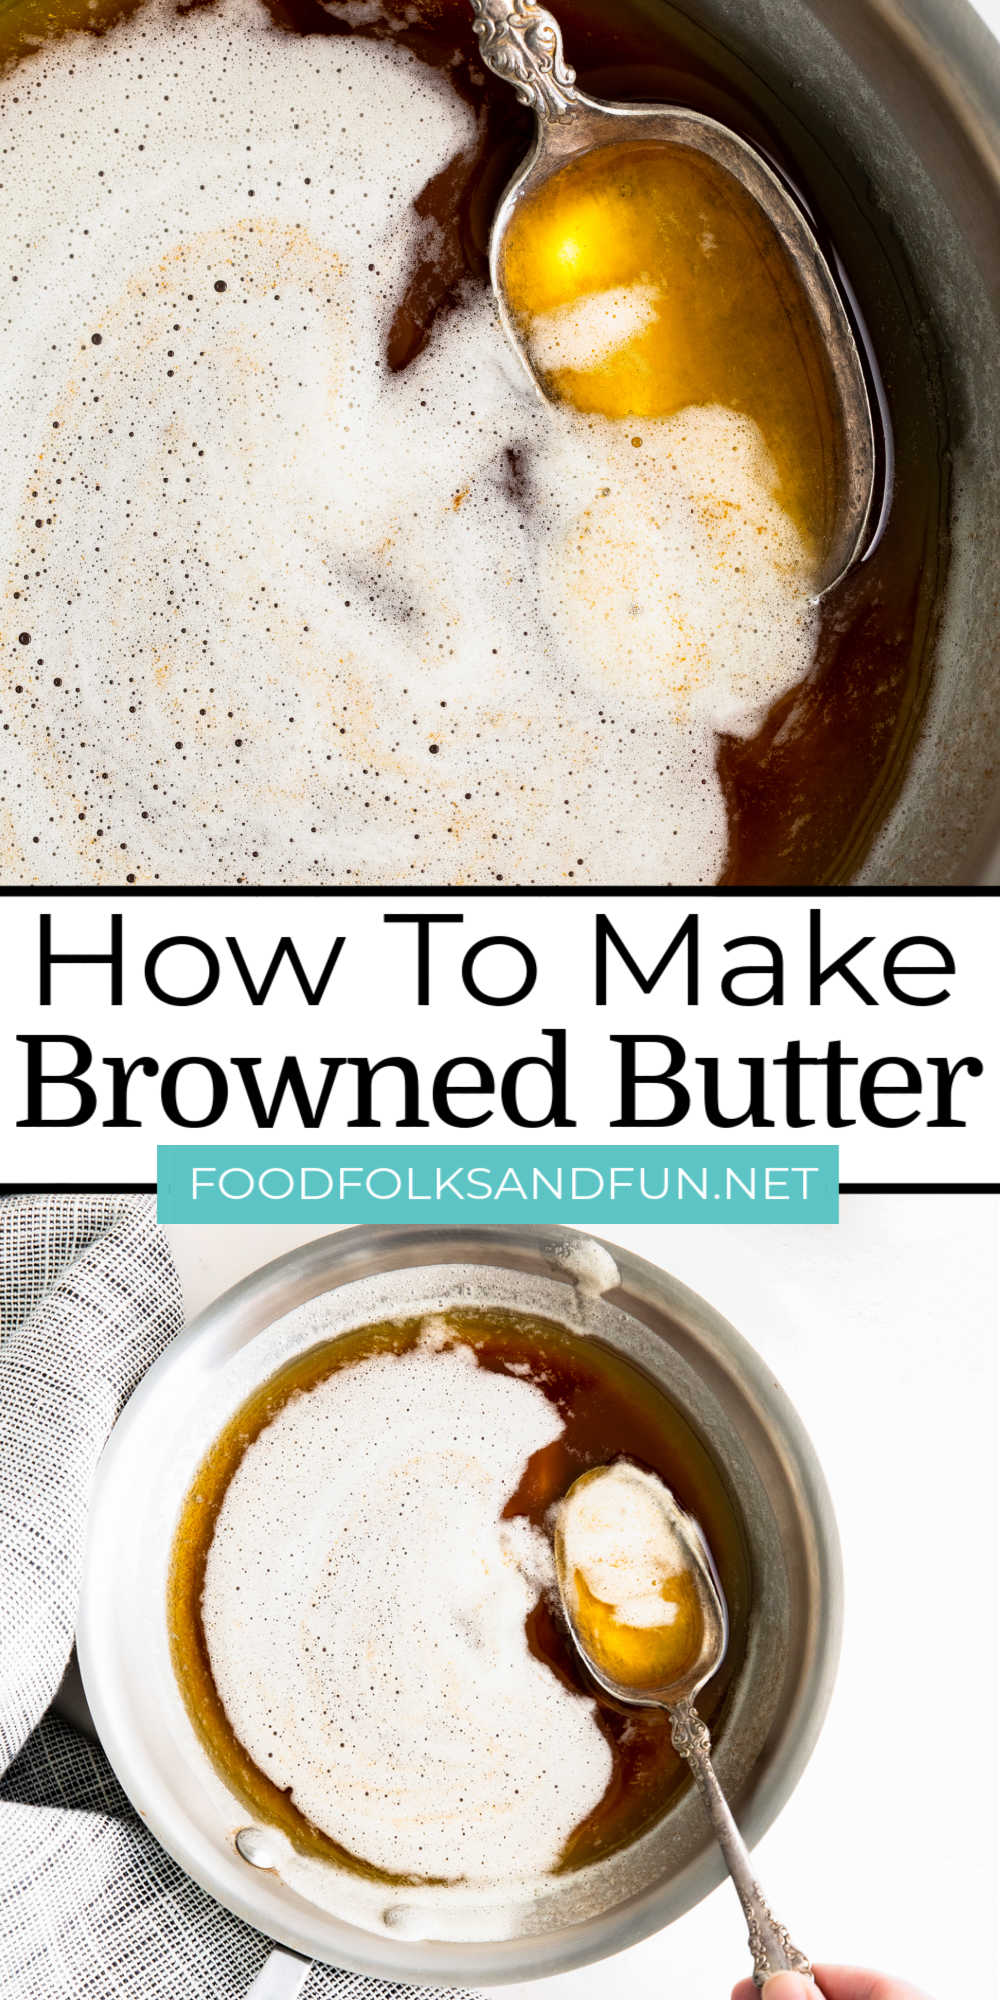 Brown Butter is easy to make and worth the effort to give an extra flavor kick to pasta sauces, cookies, potatoes, and more! via @foodfolksandfun